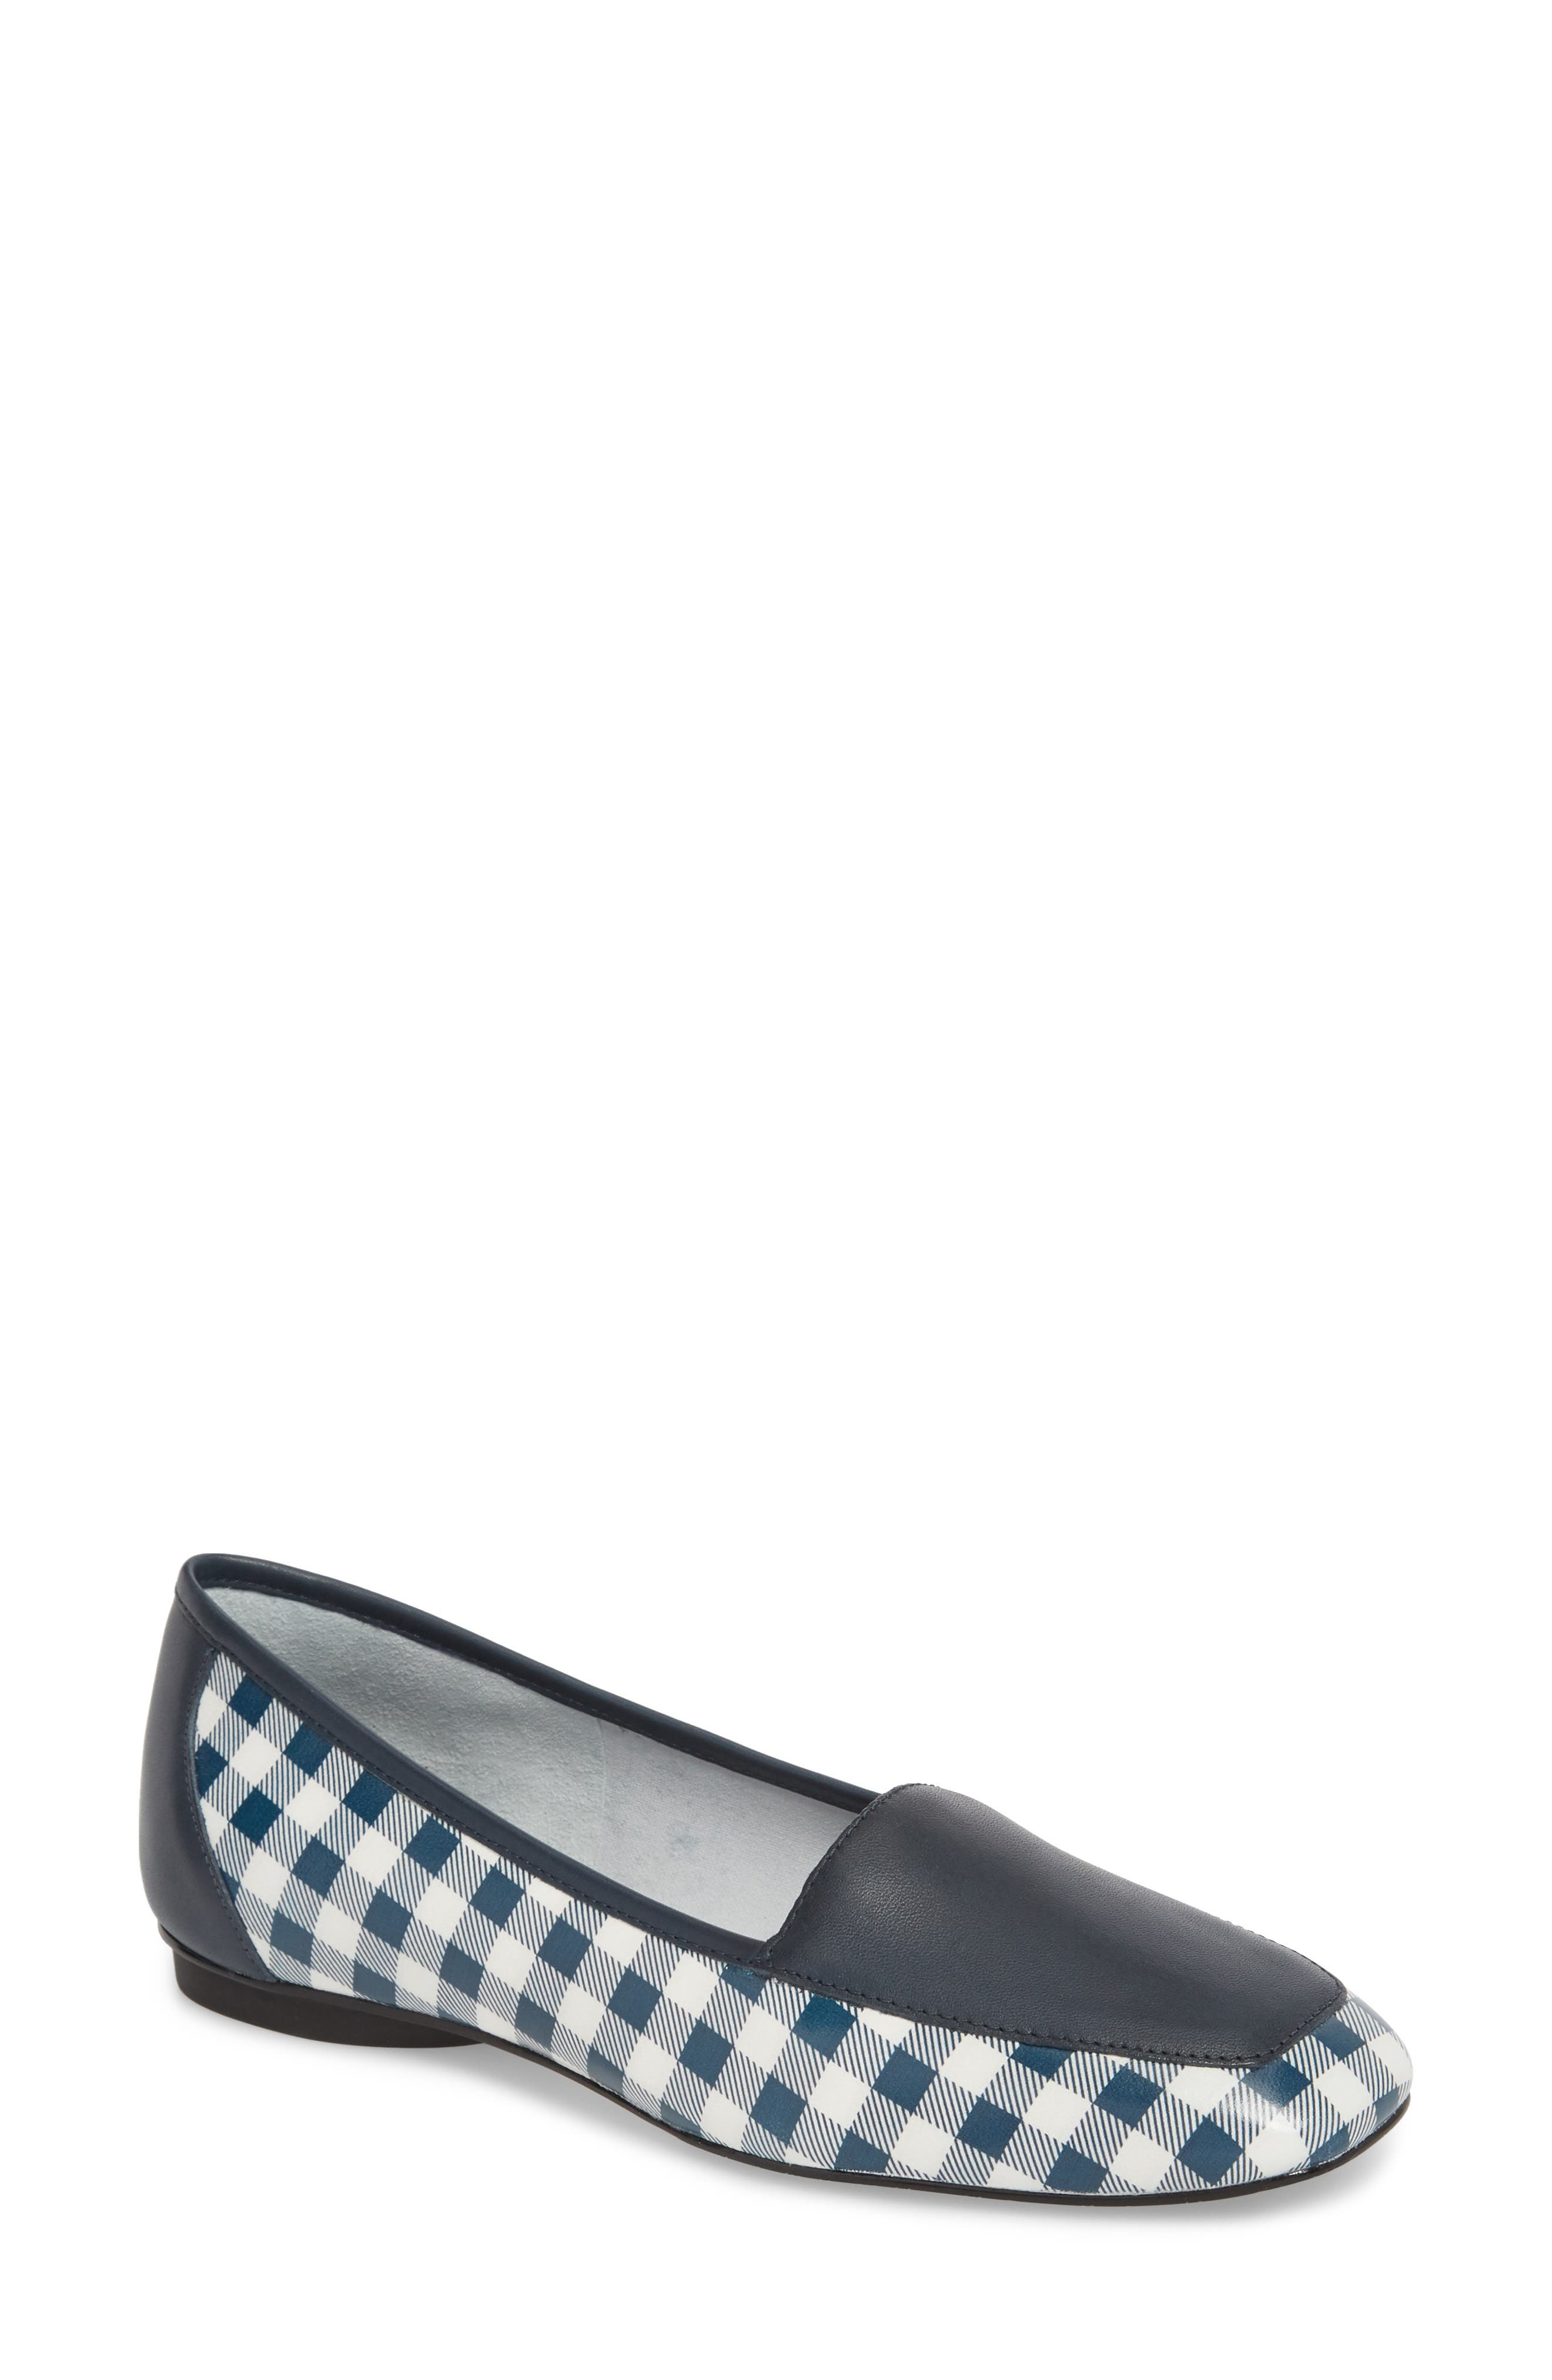 Deedee Apron Toe Flat,                         Main,                         color, Navy/ Navy Leather